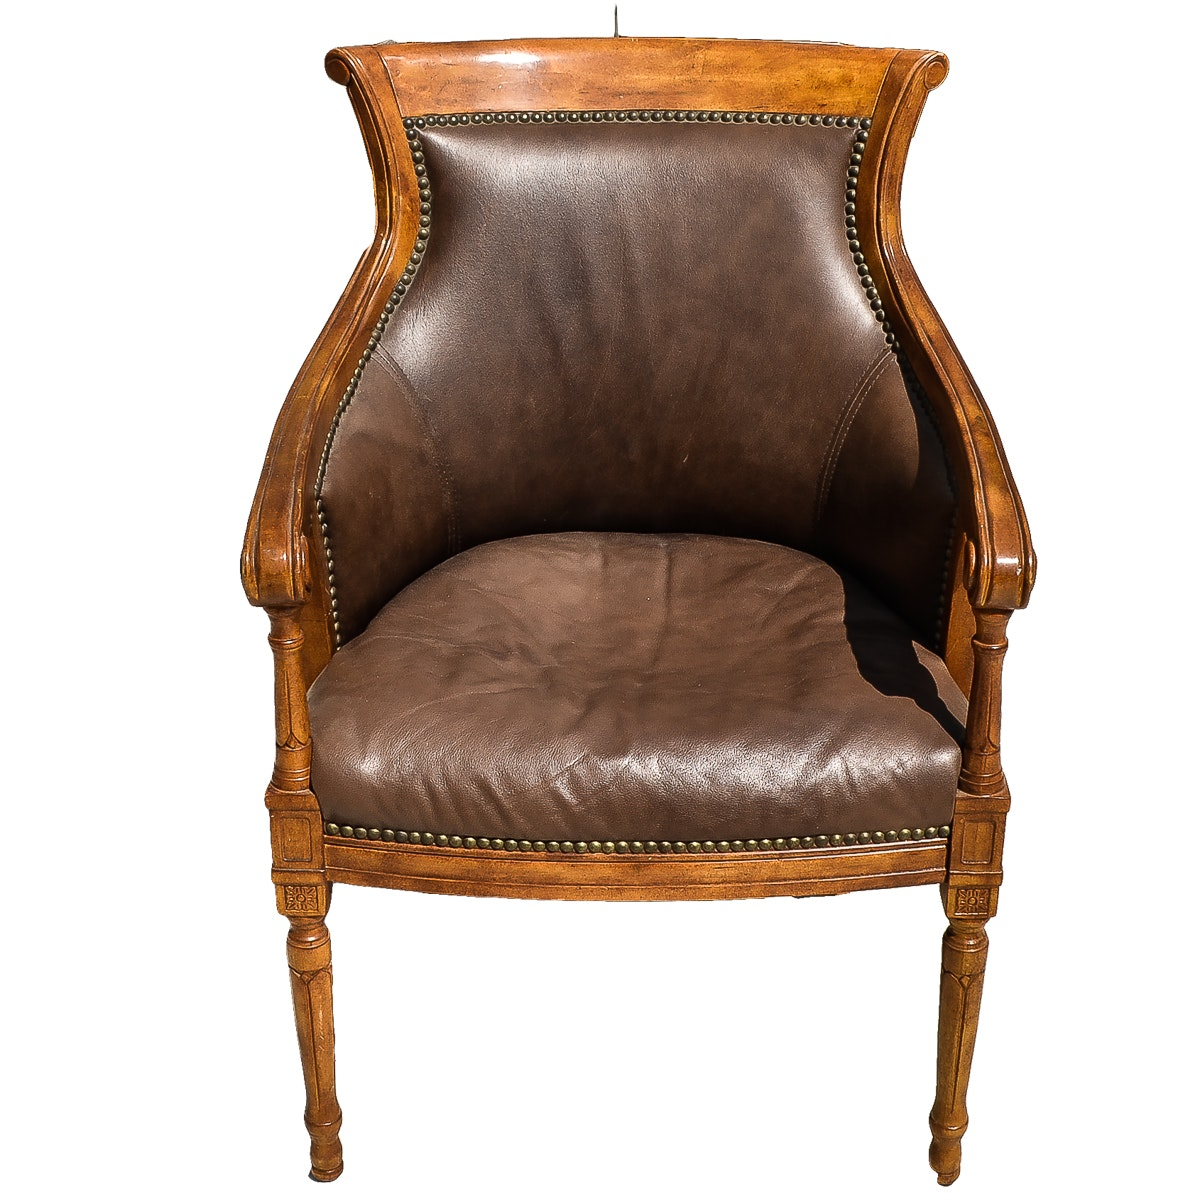 French Neoclassical Style Bergère